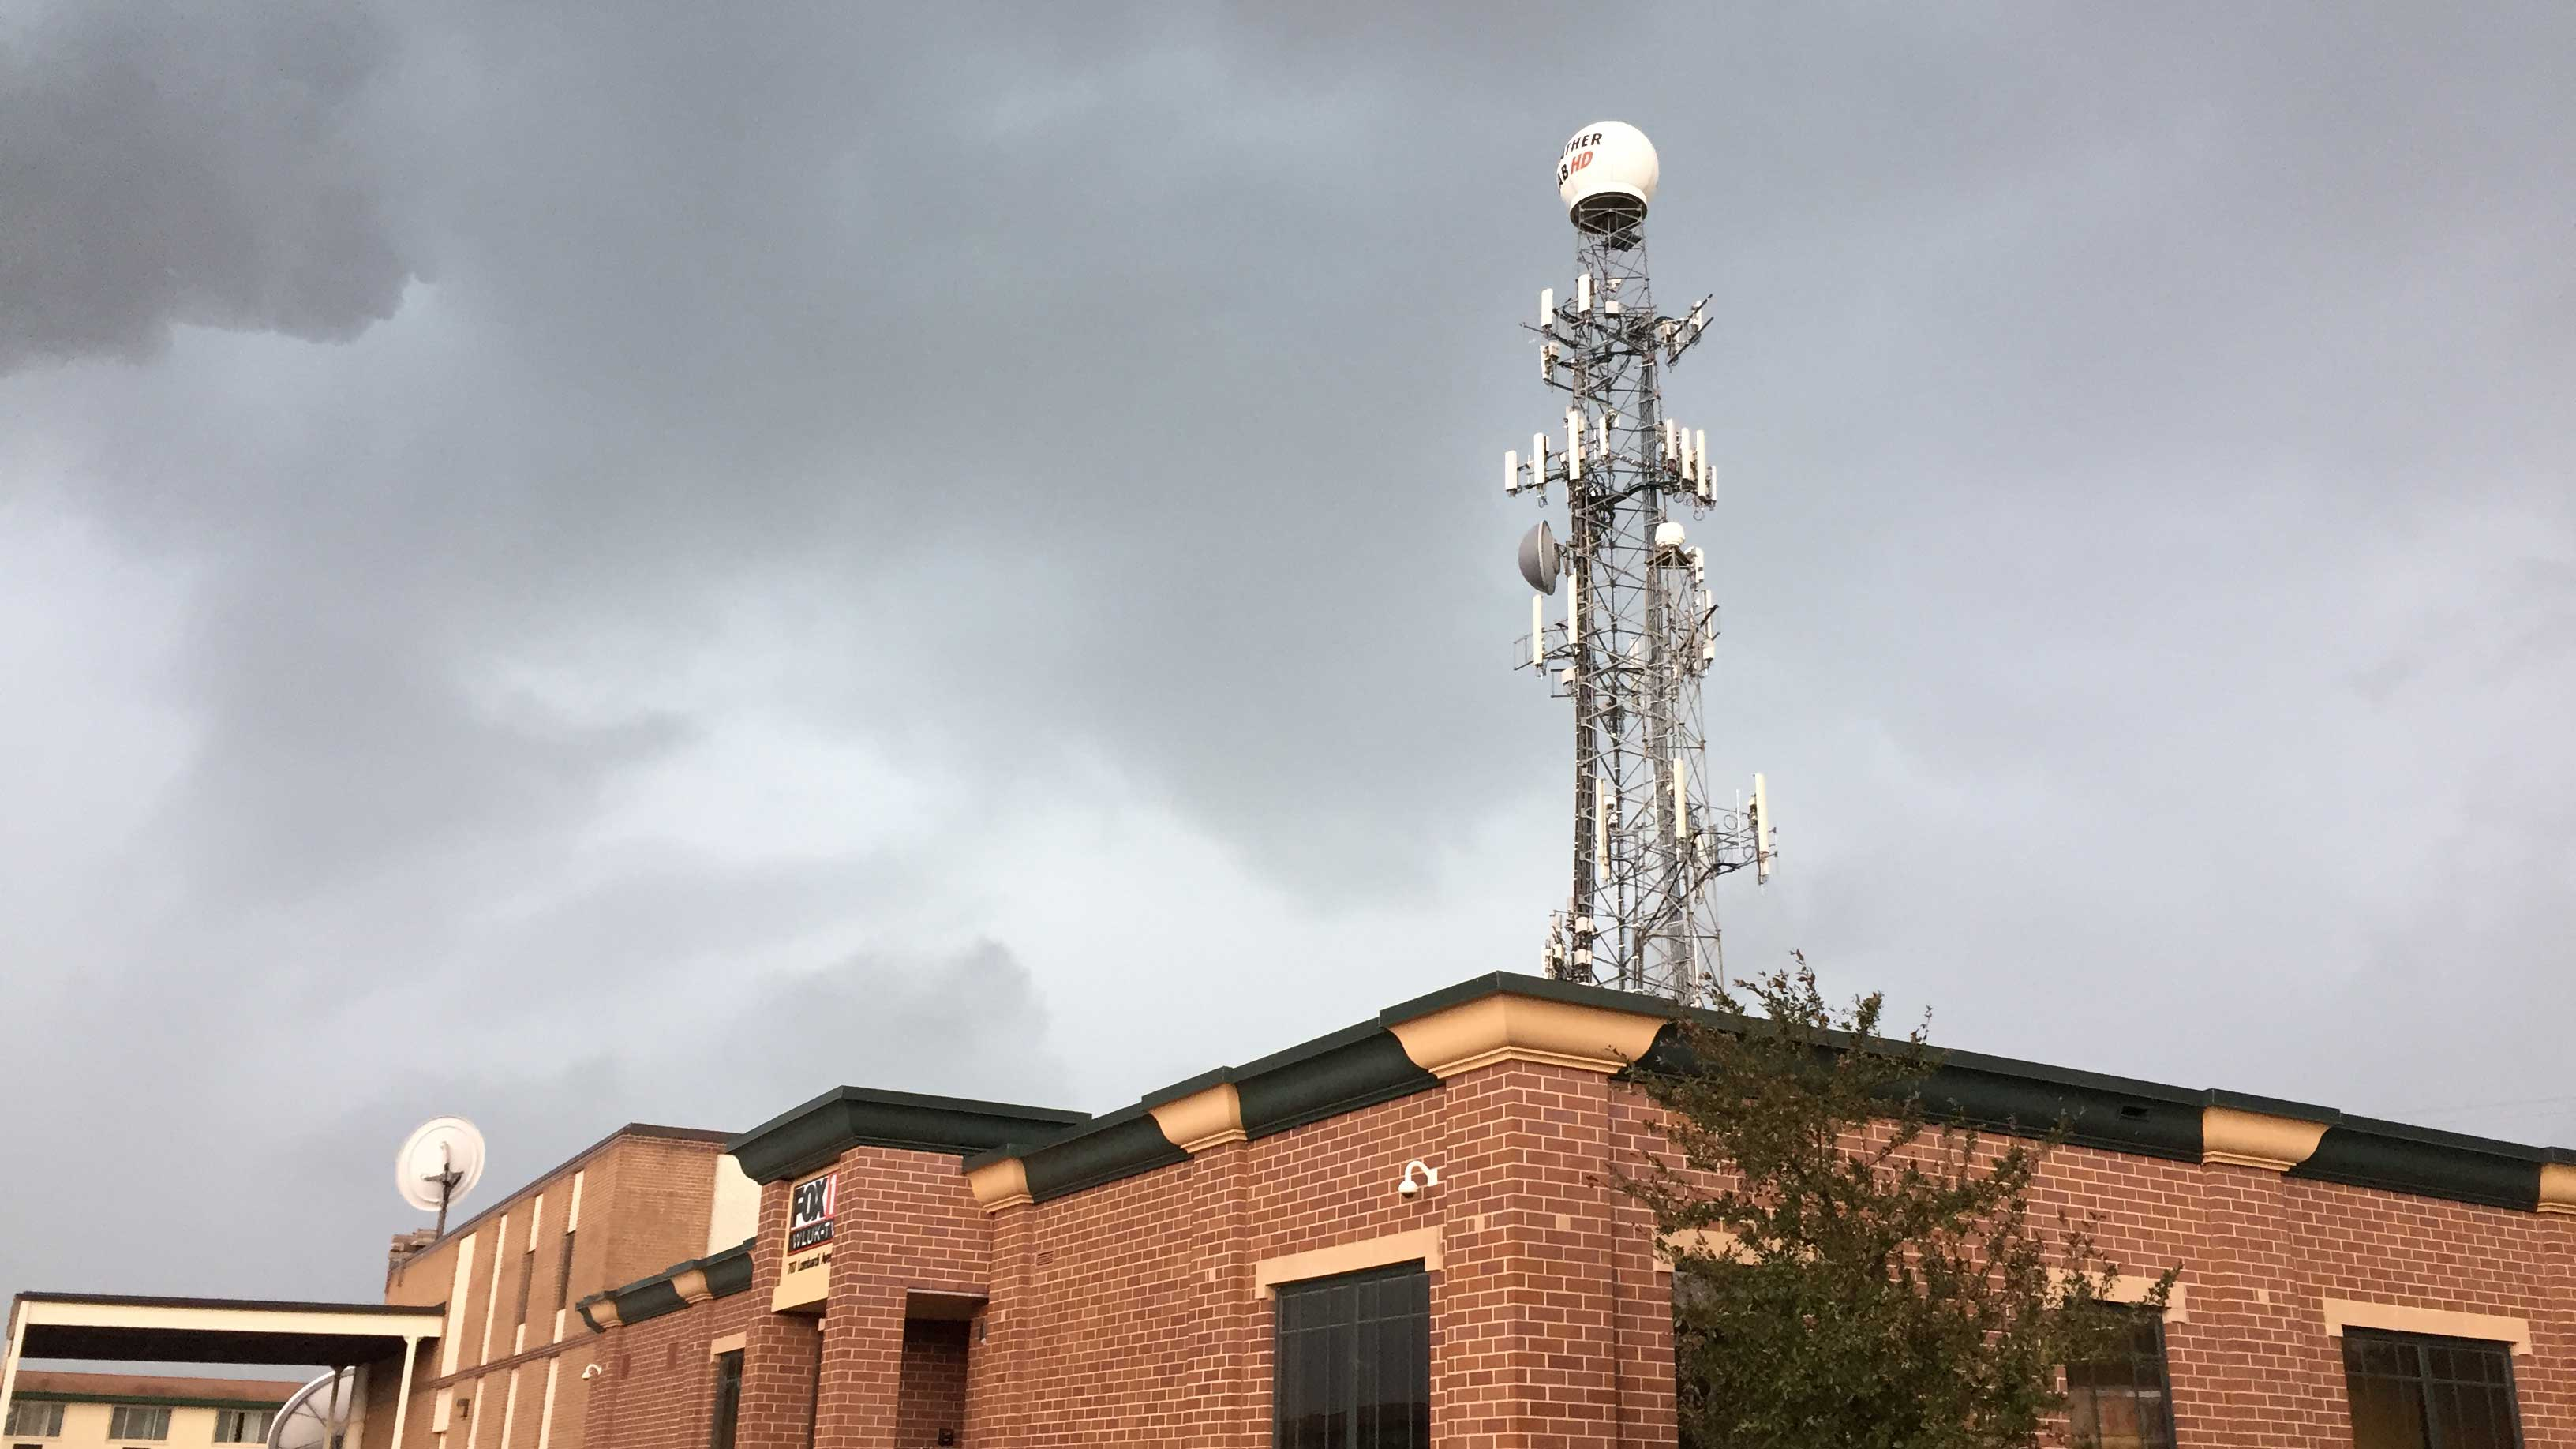 Dark clouds surround FOX 11's radar tower in Ashwaubenon June 14, 2017. (WLUK/Scott Hurley)